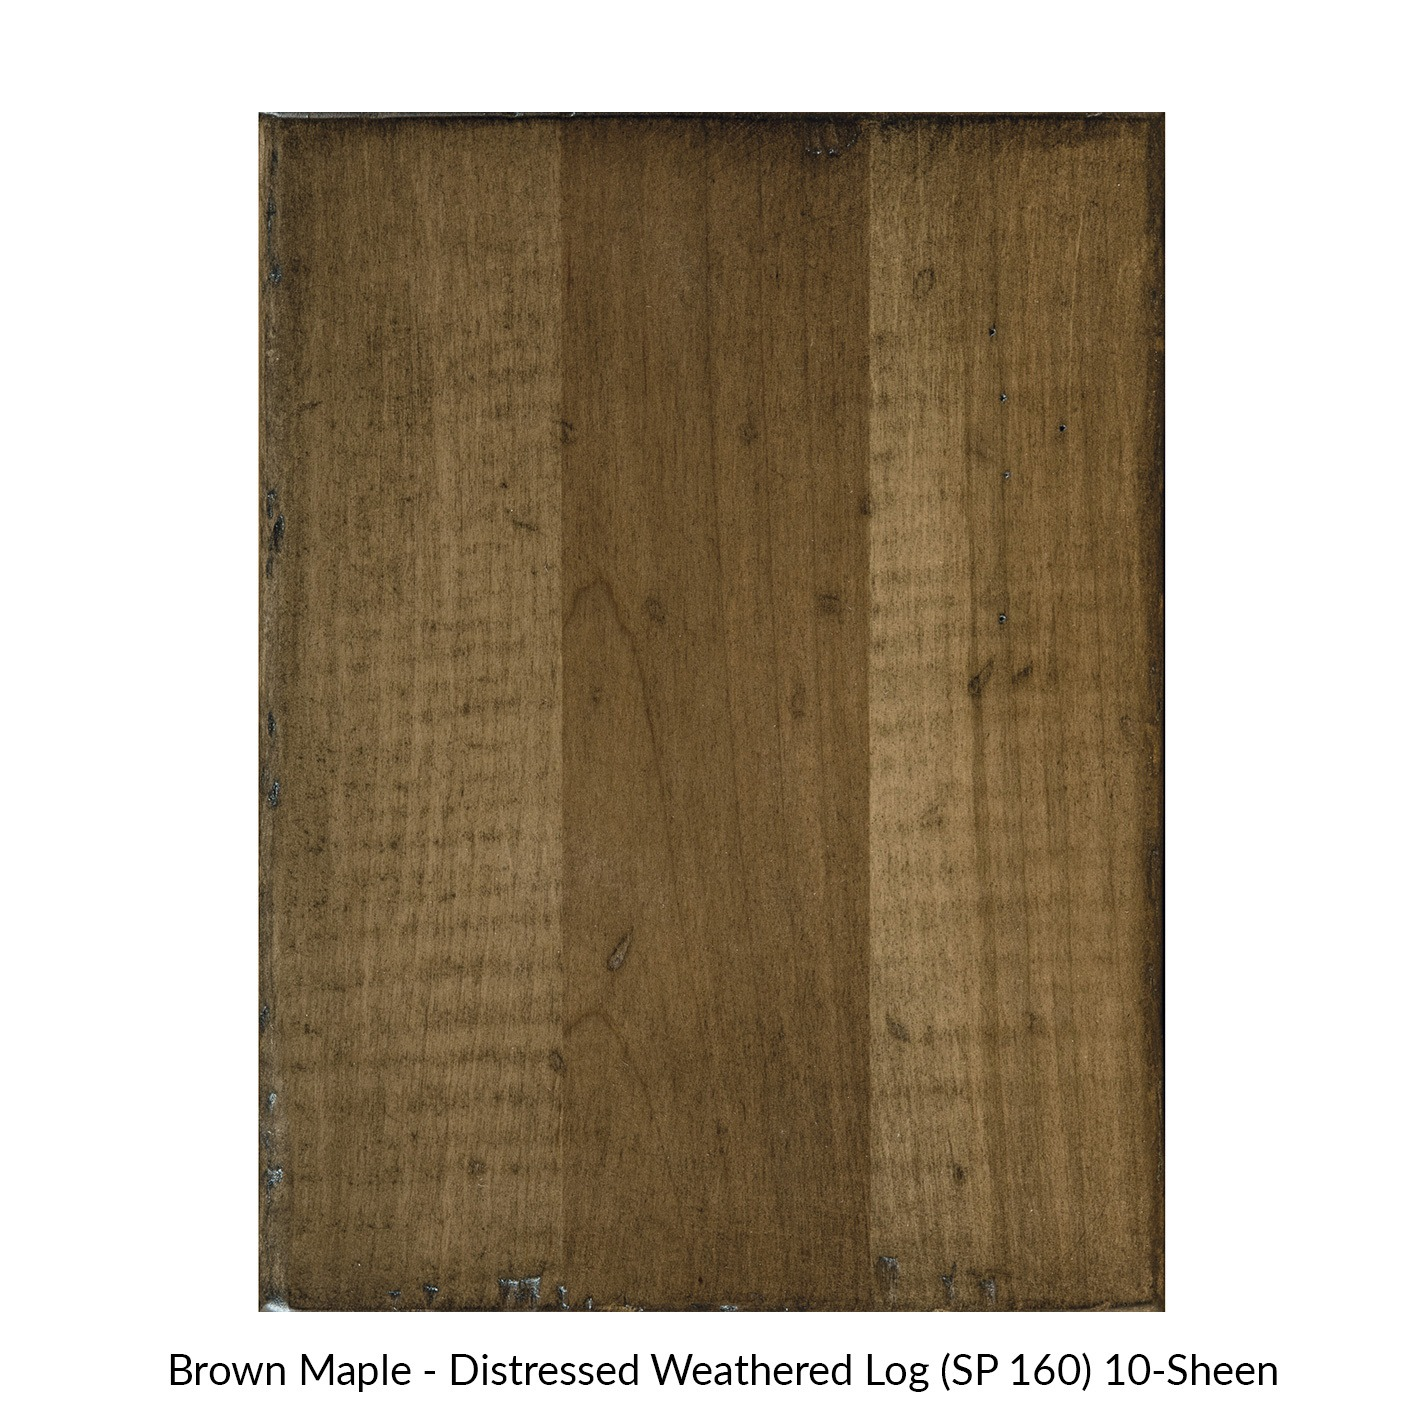 spectrum-brown-maple-distressed-weathered-log-sp-160.jpg